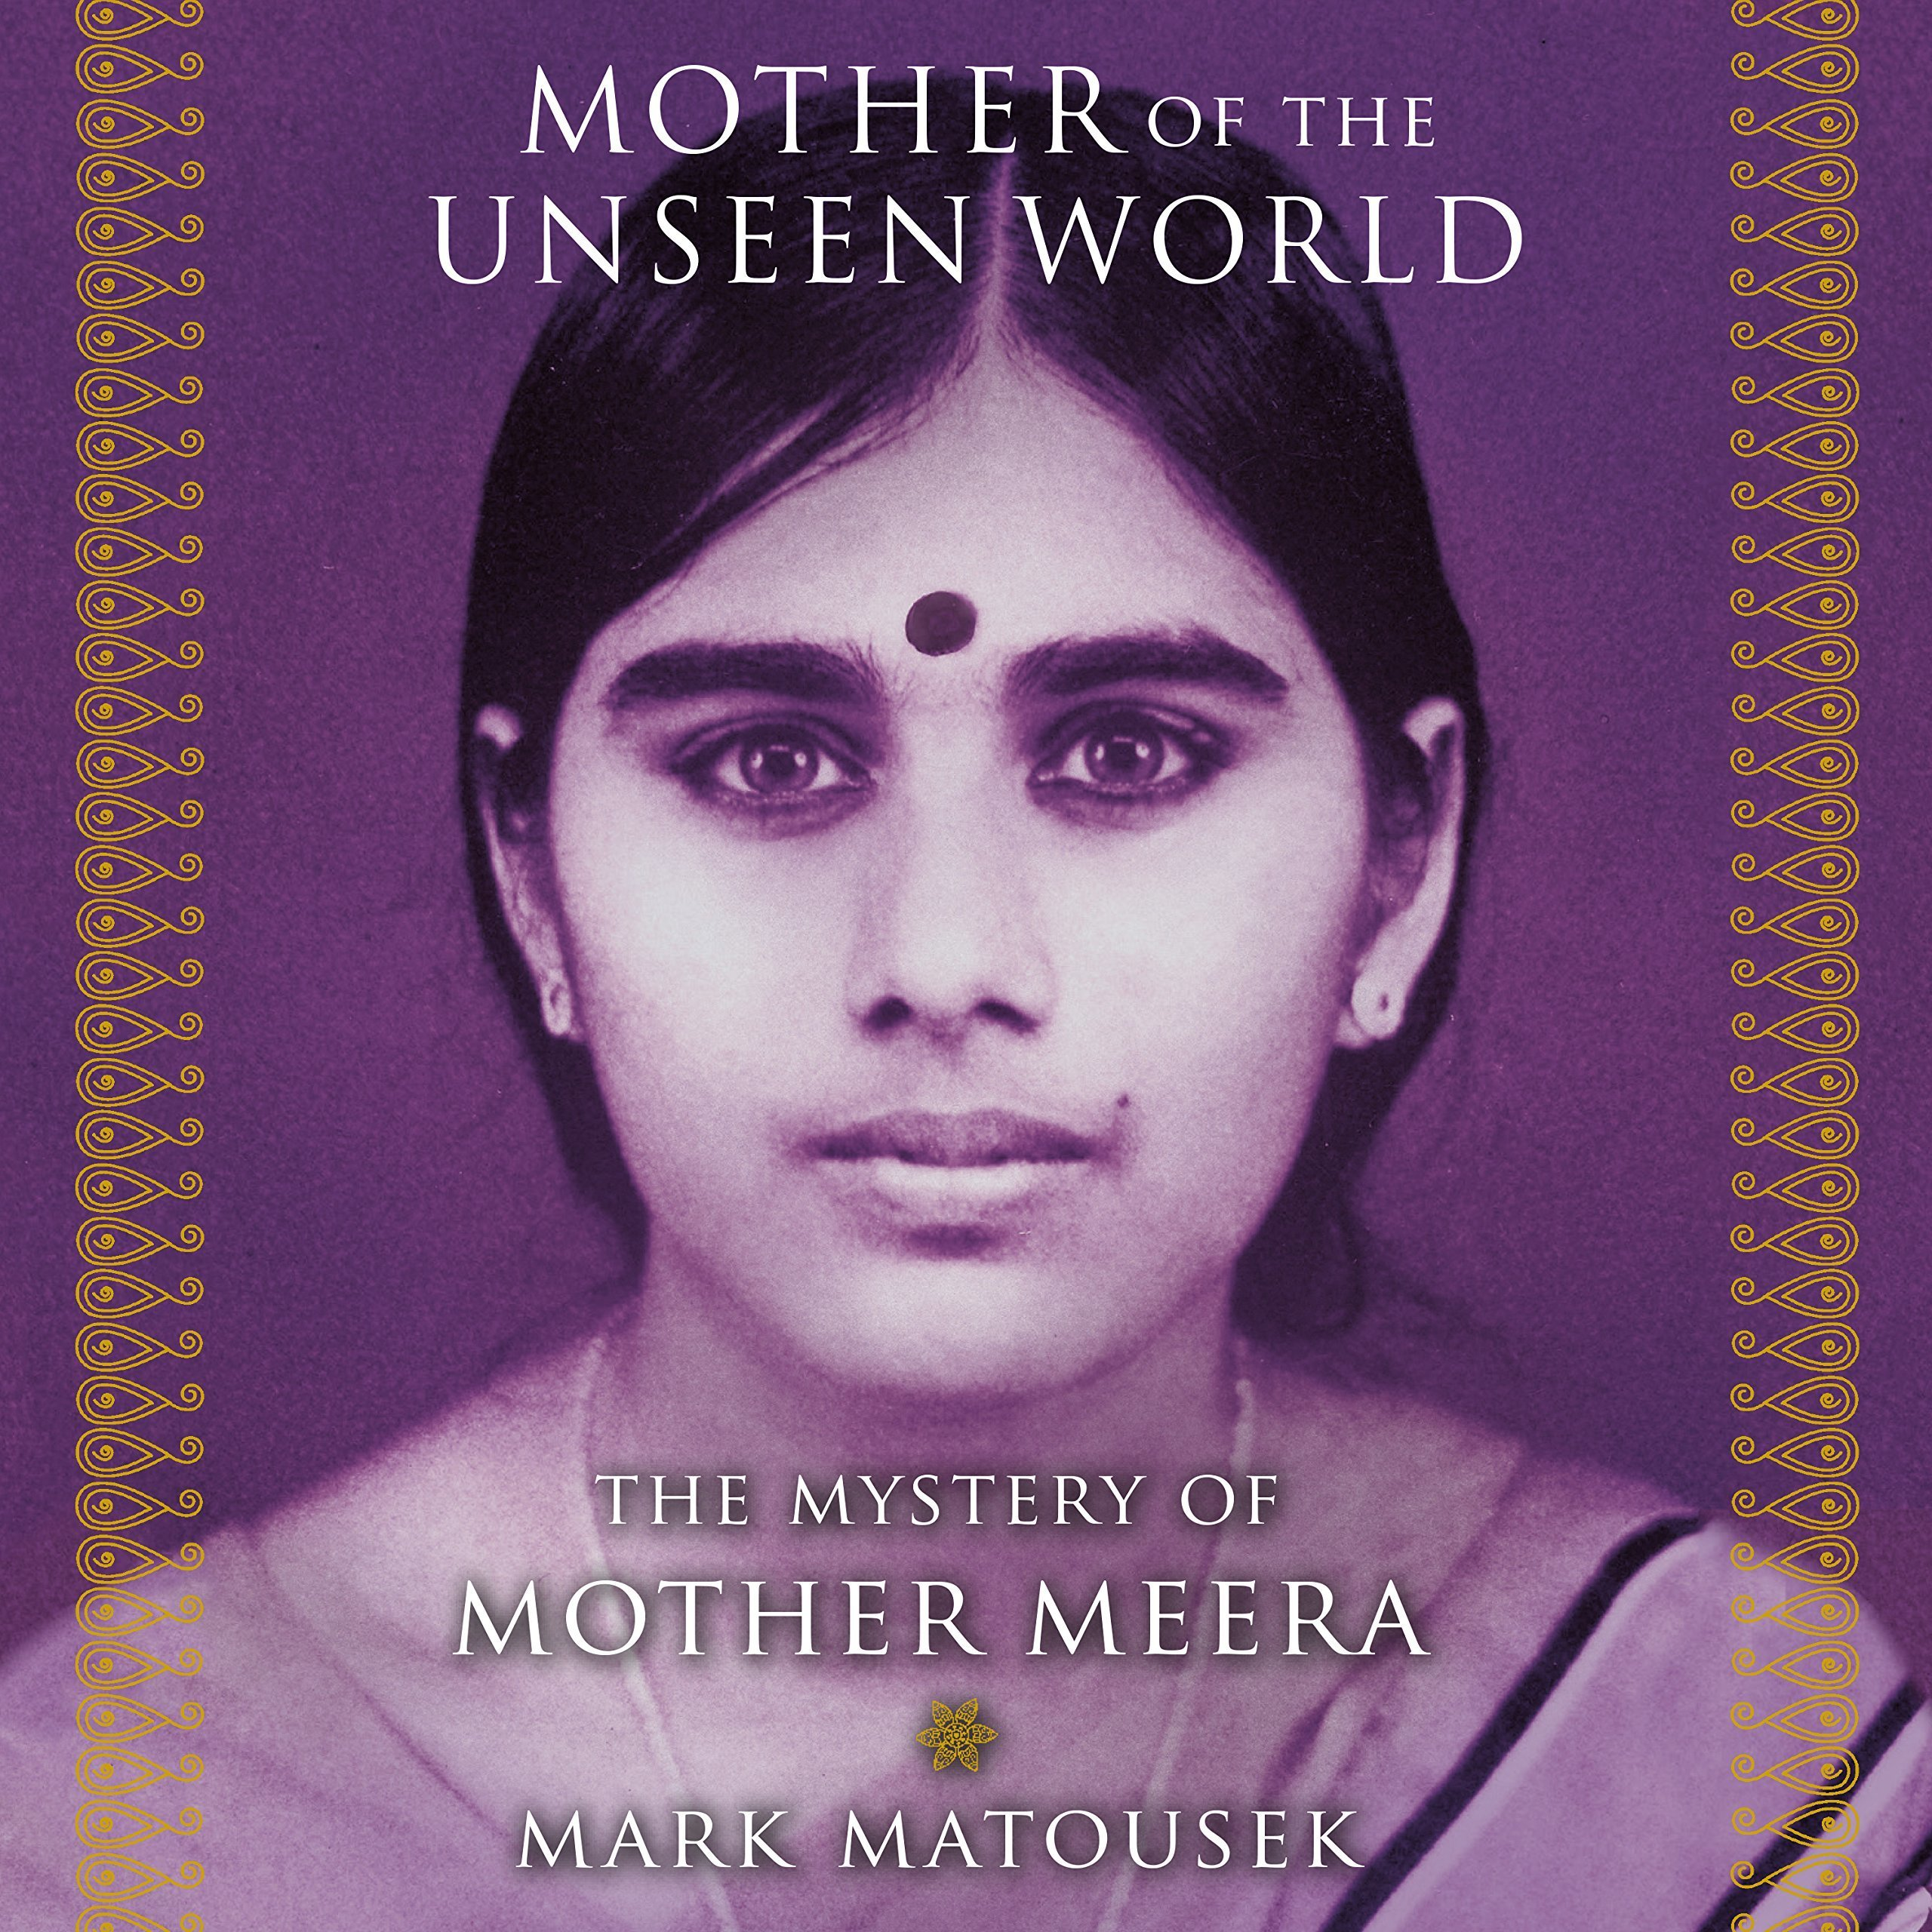 the world unseen book download